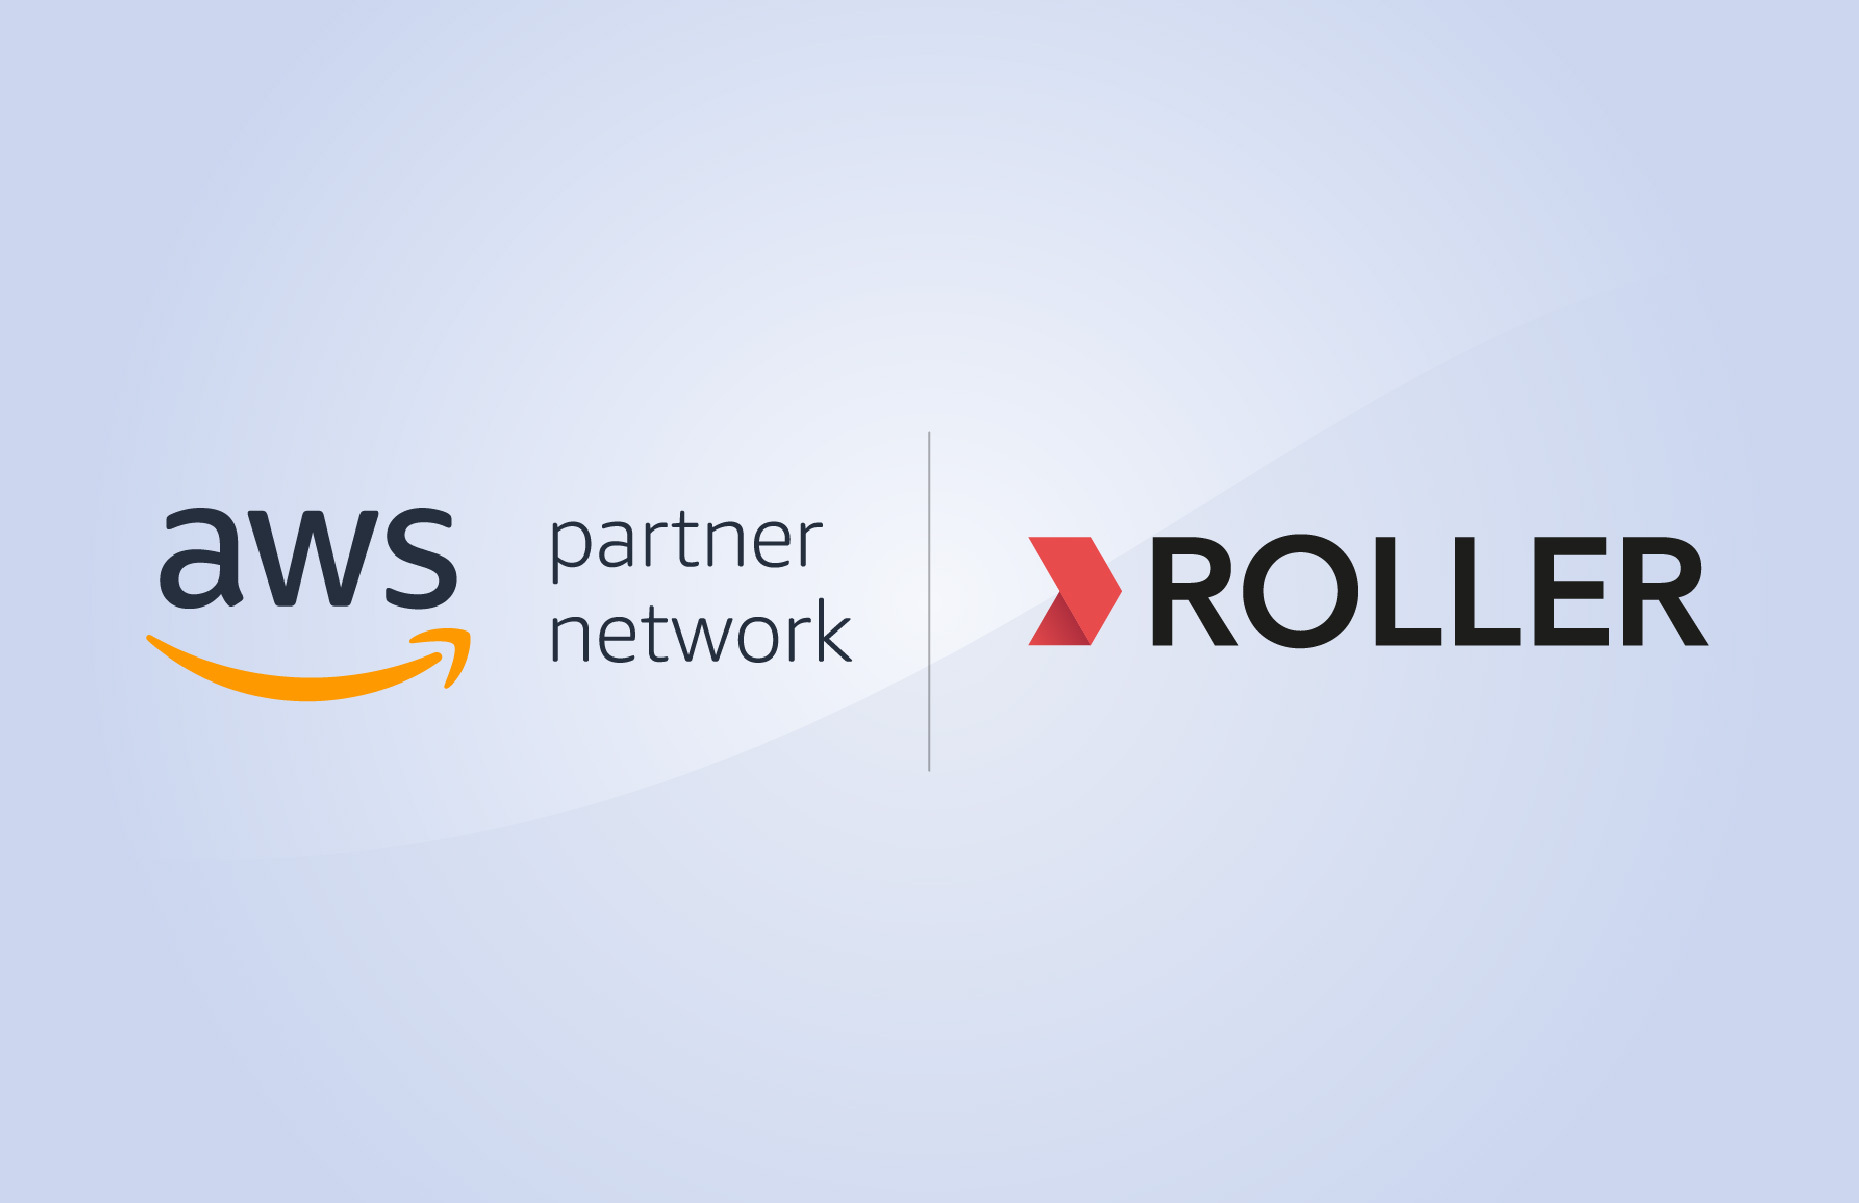 ROLLER Joins Amazon Web Services Partner Network